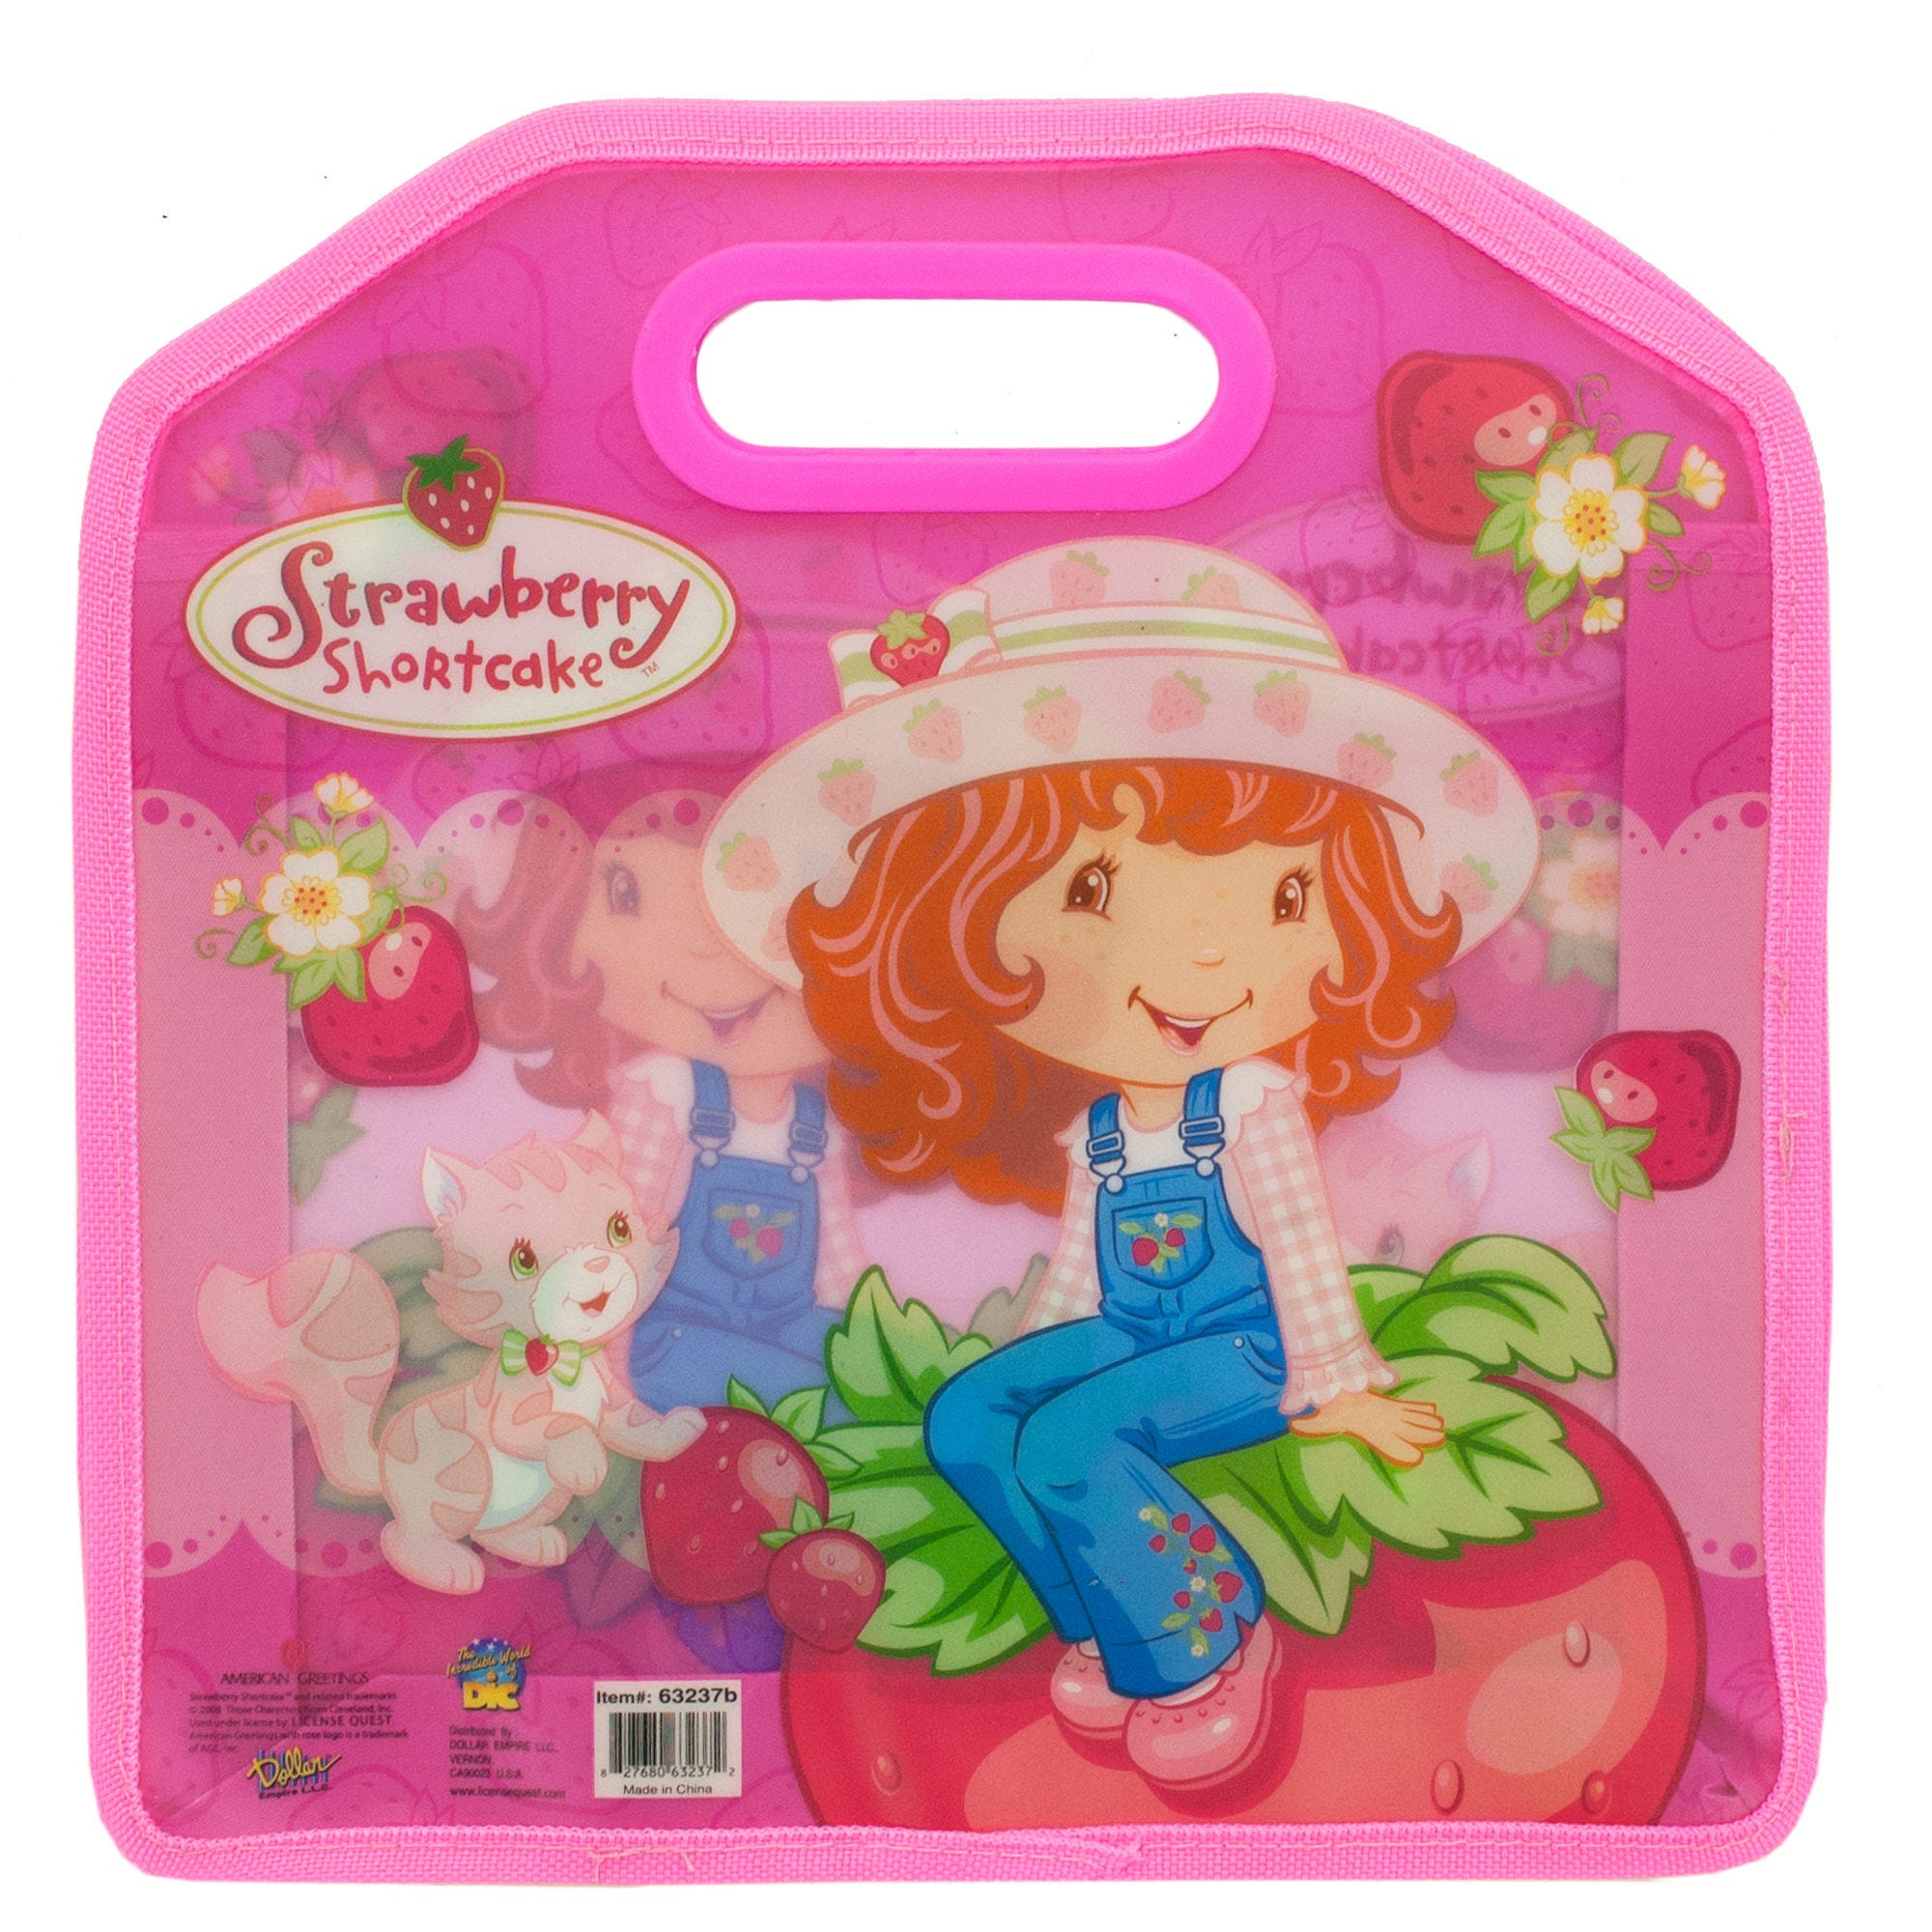 strawberry-shortcake-tote-BAG